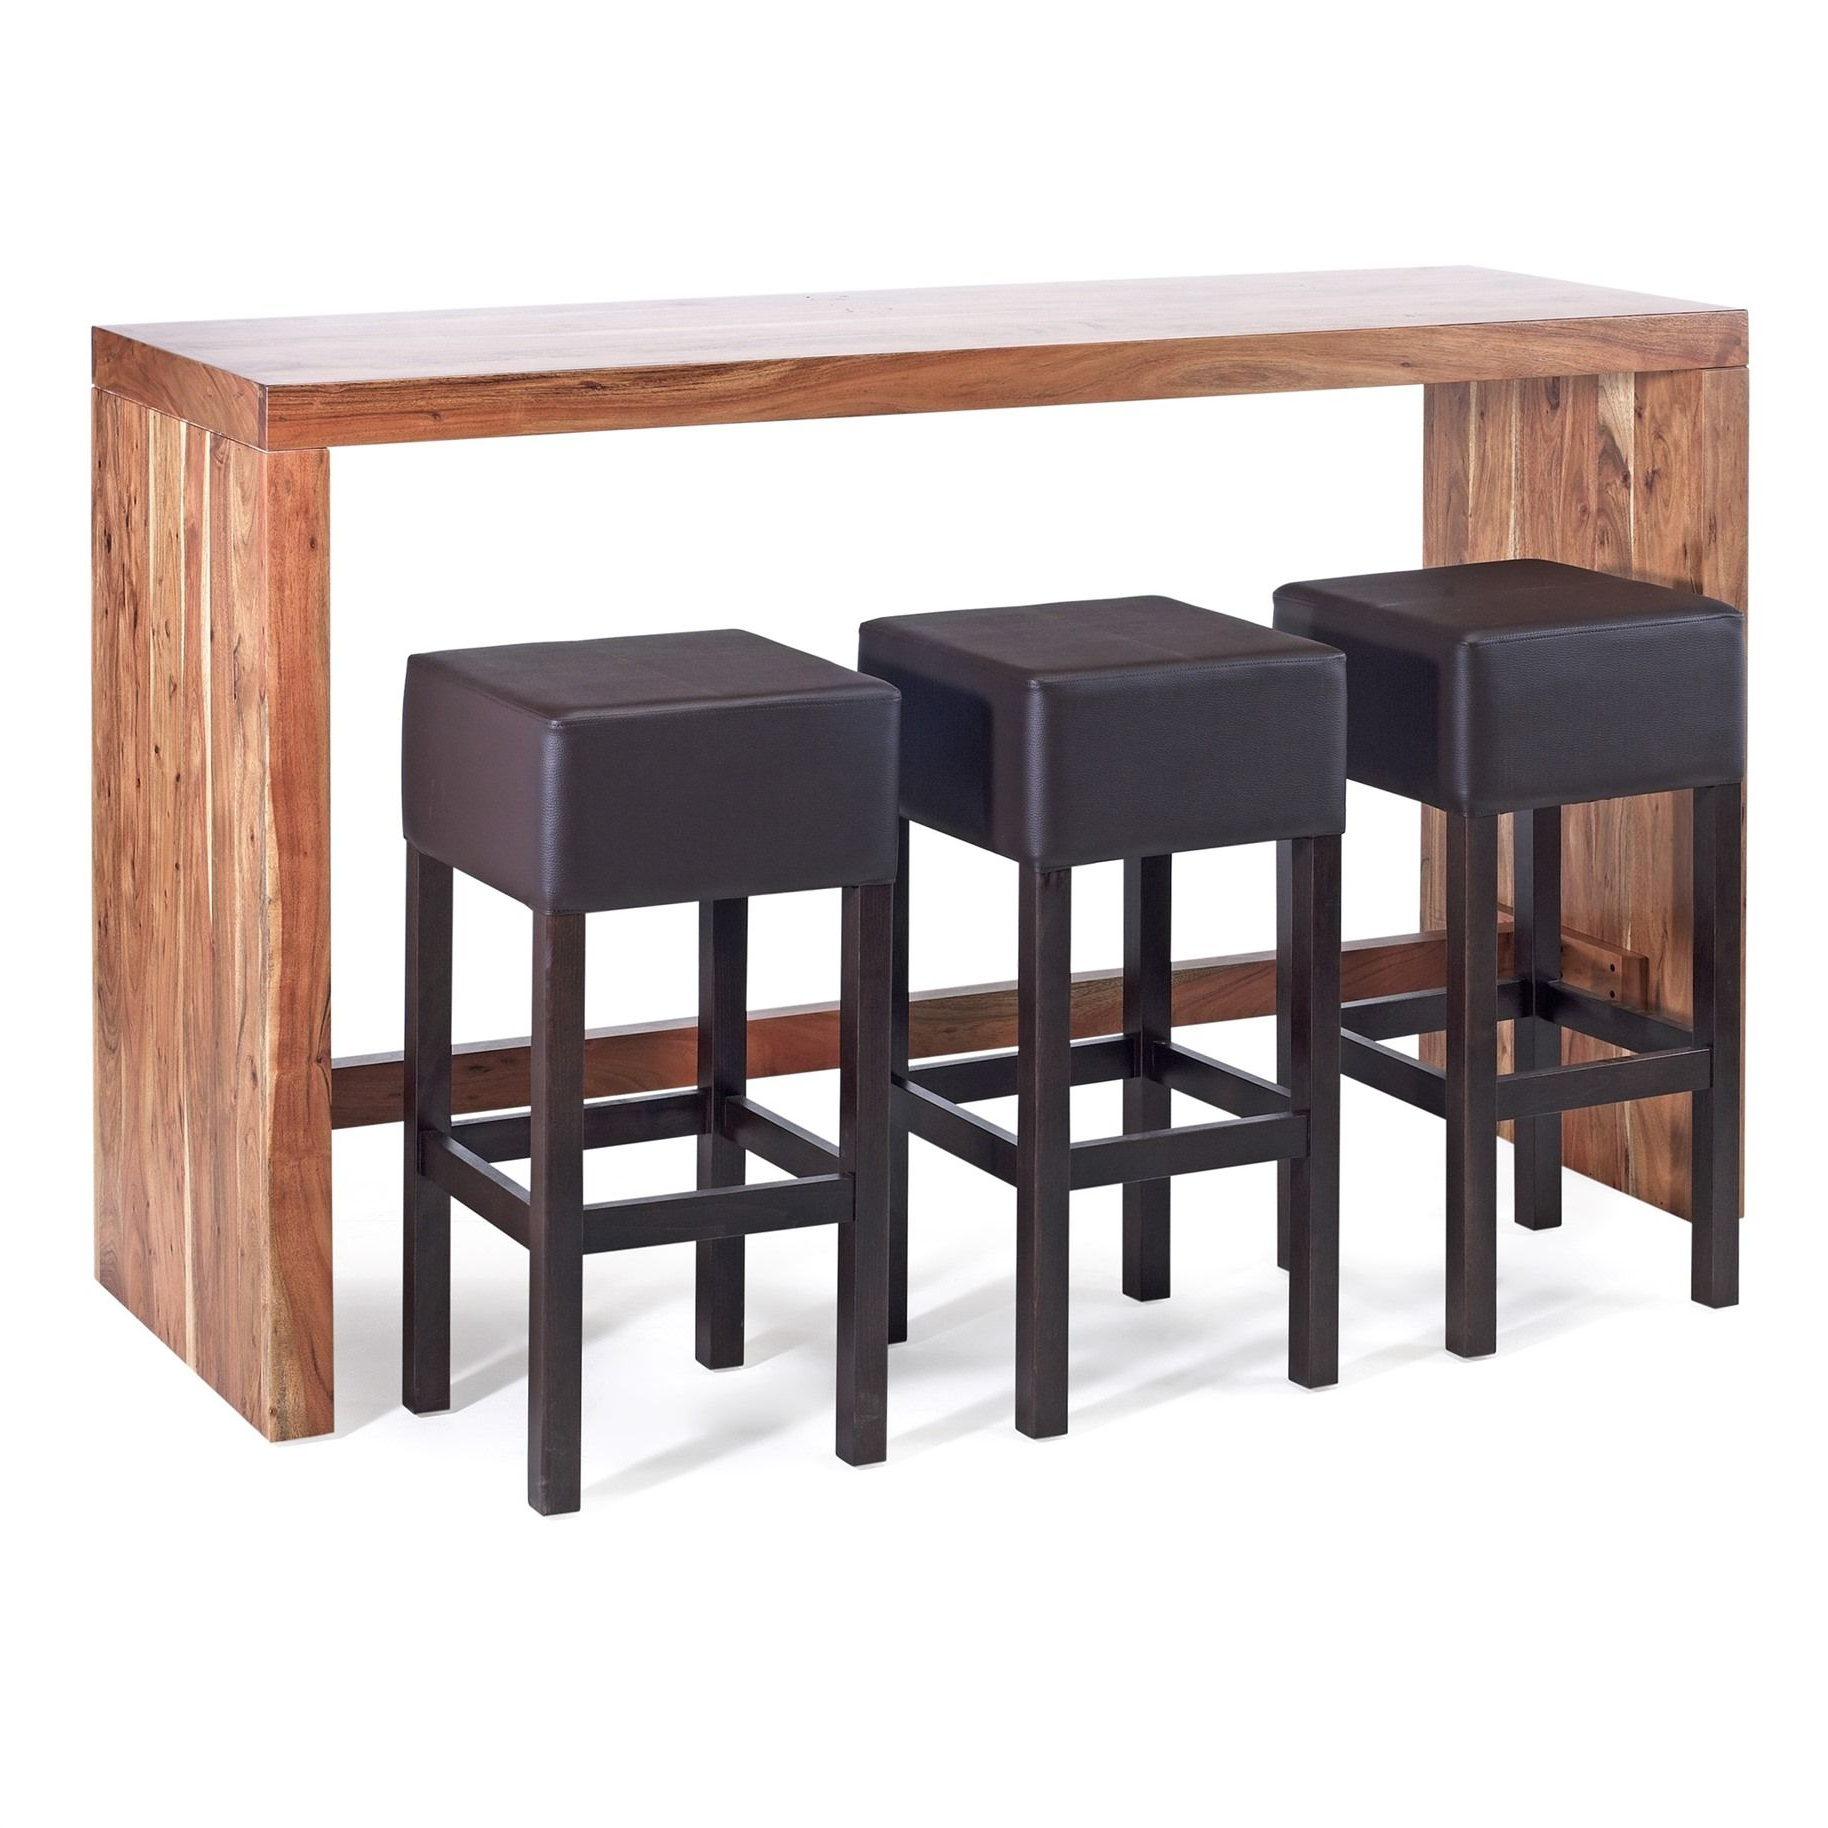 Denzel 5 Piece Counter Height Breakfast Nook Dining Sets In 2018 27+ Tantalizing Bar Table Ideas (Gallery 16 of 20)